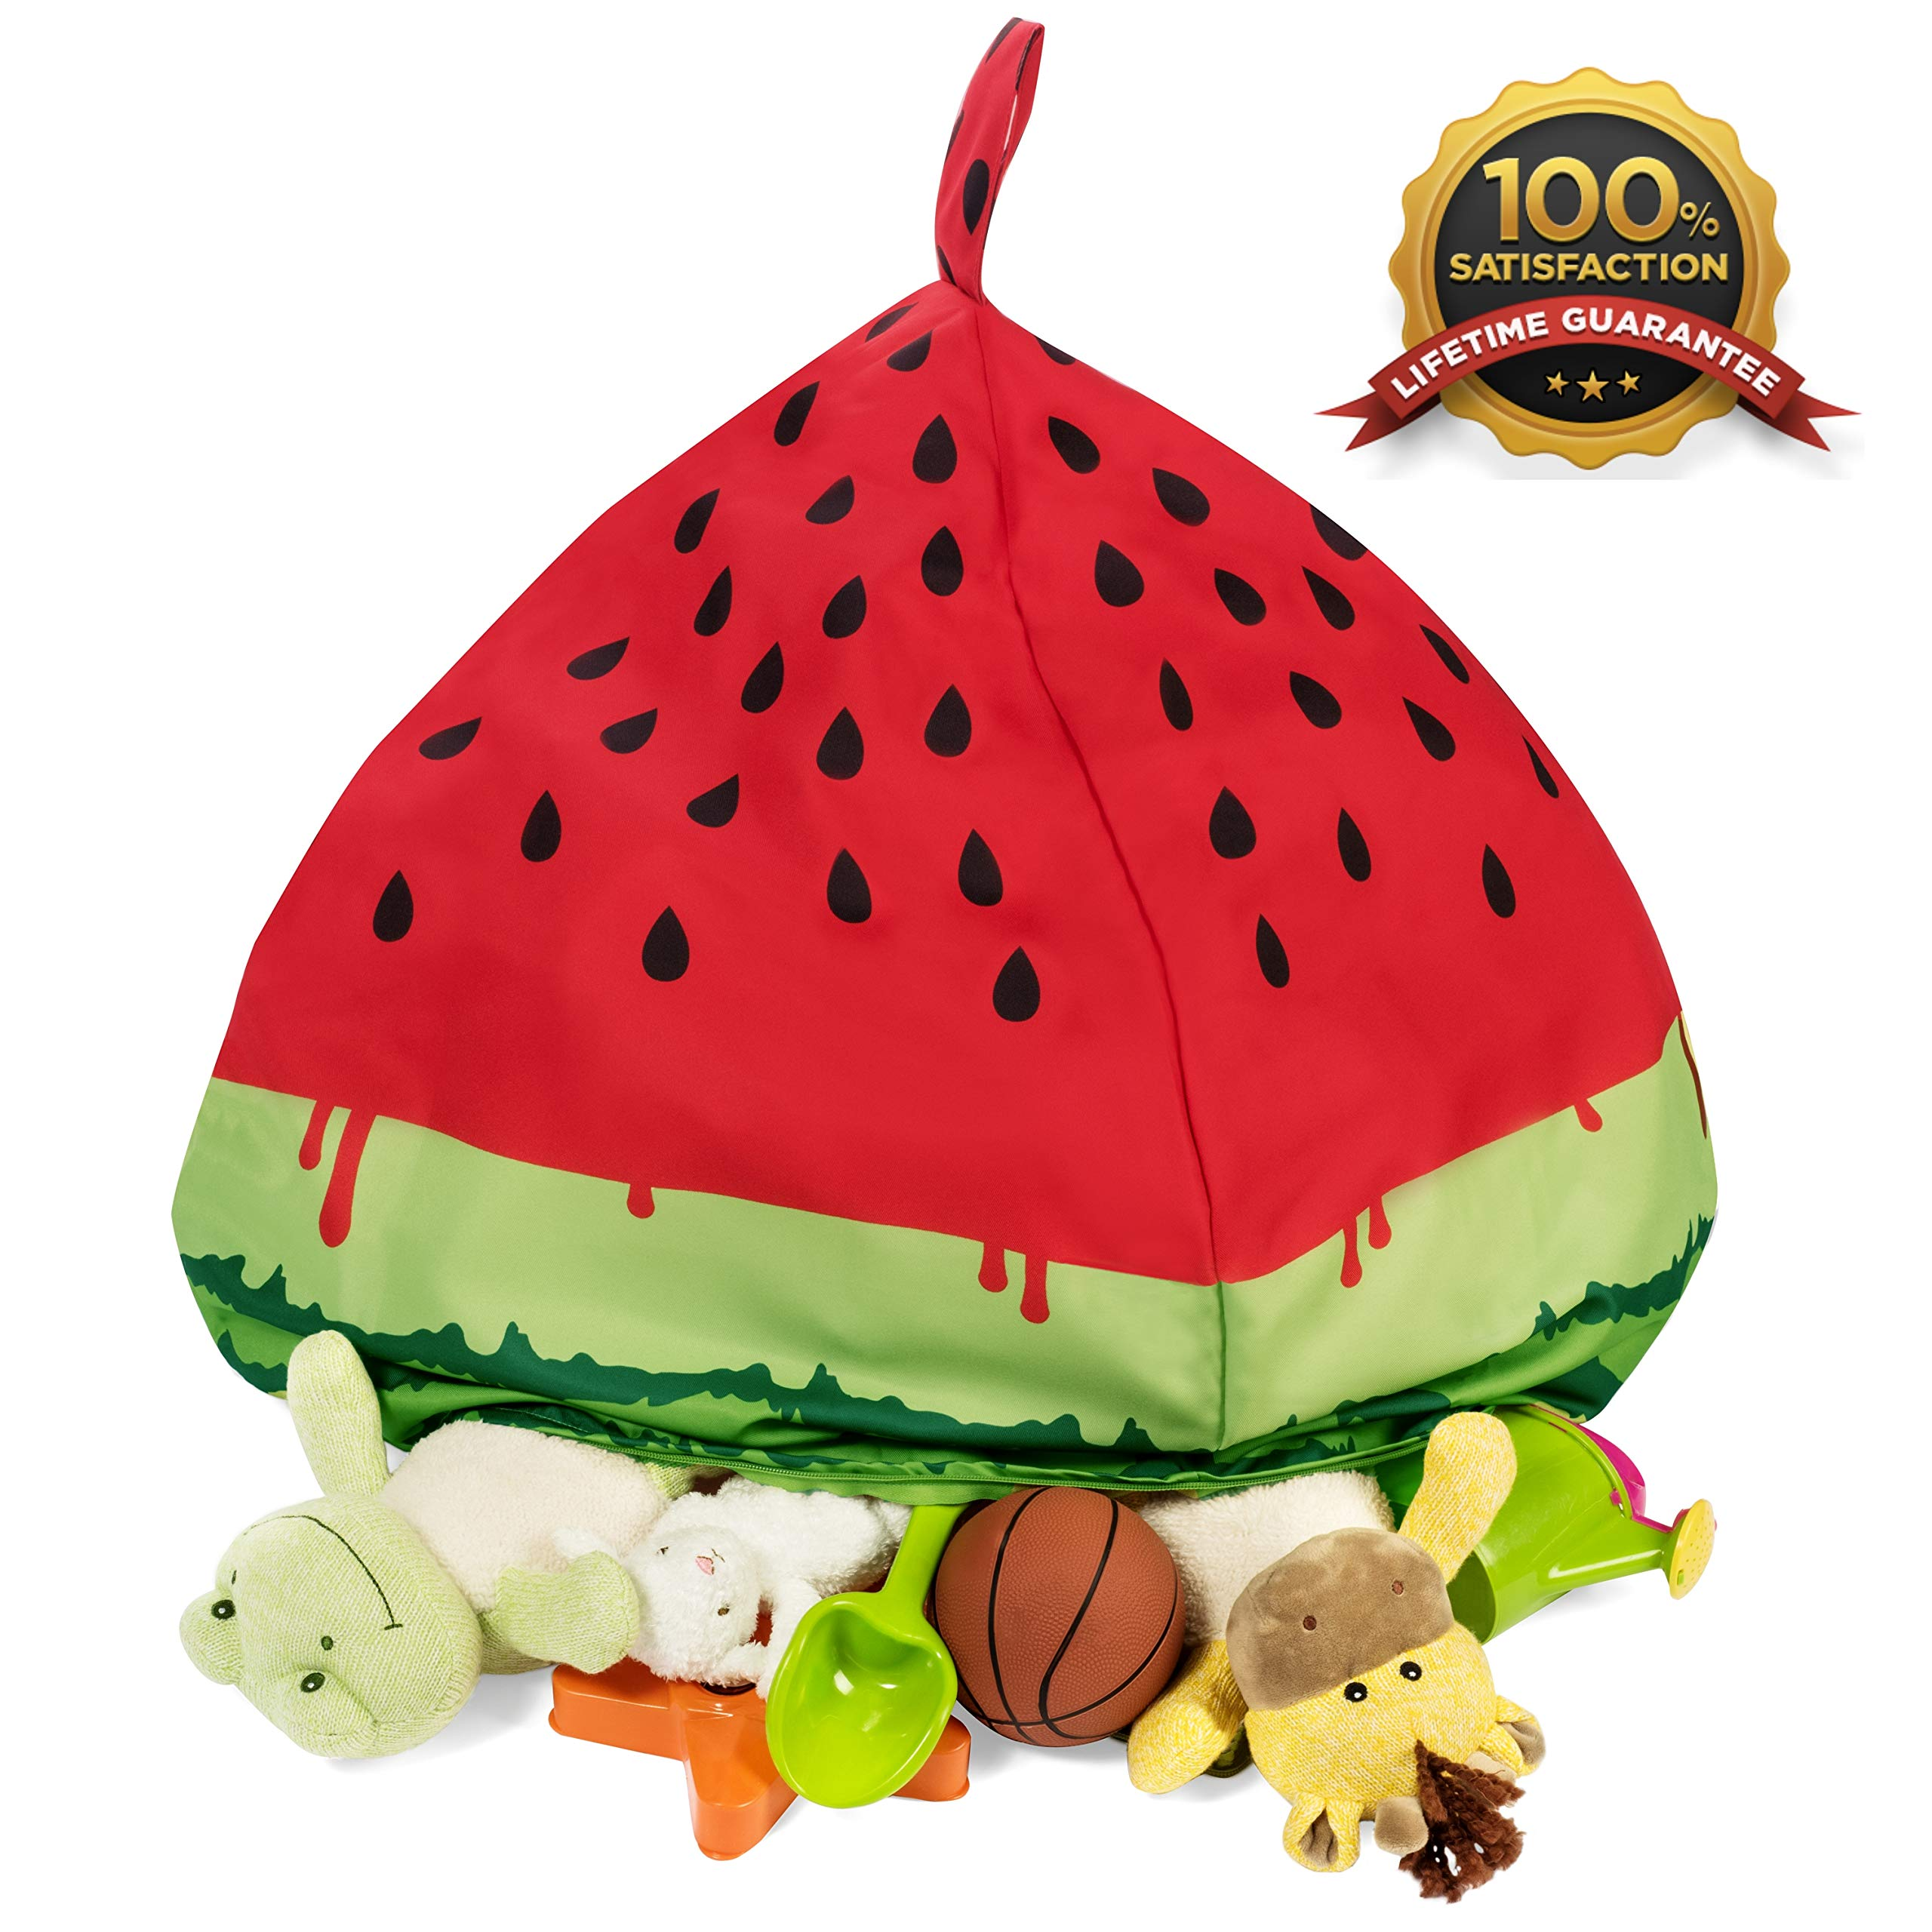 Fill It Bean Bag Cover | Stuffed Animal Bean Bag Storage | Watermelon Design | Premium Quality | Strong Zippers by Fill It